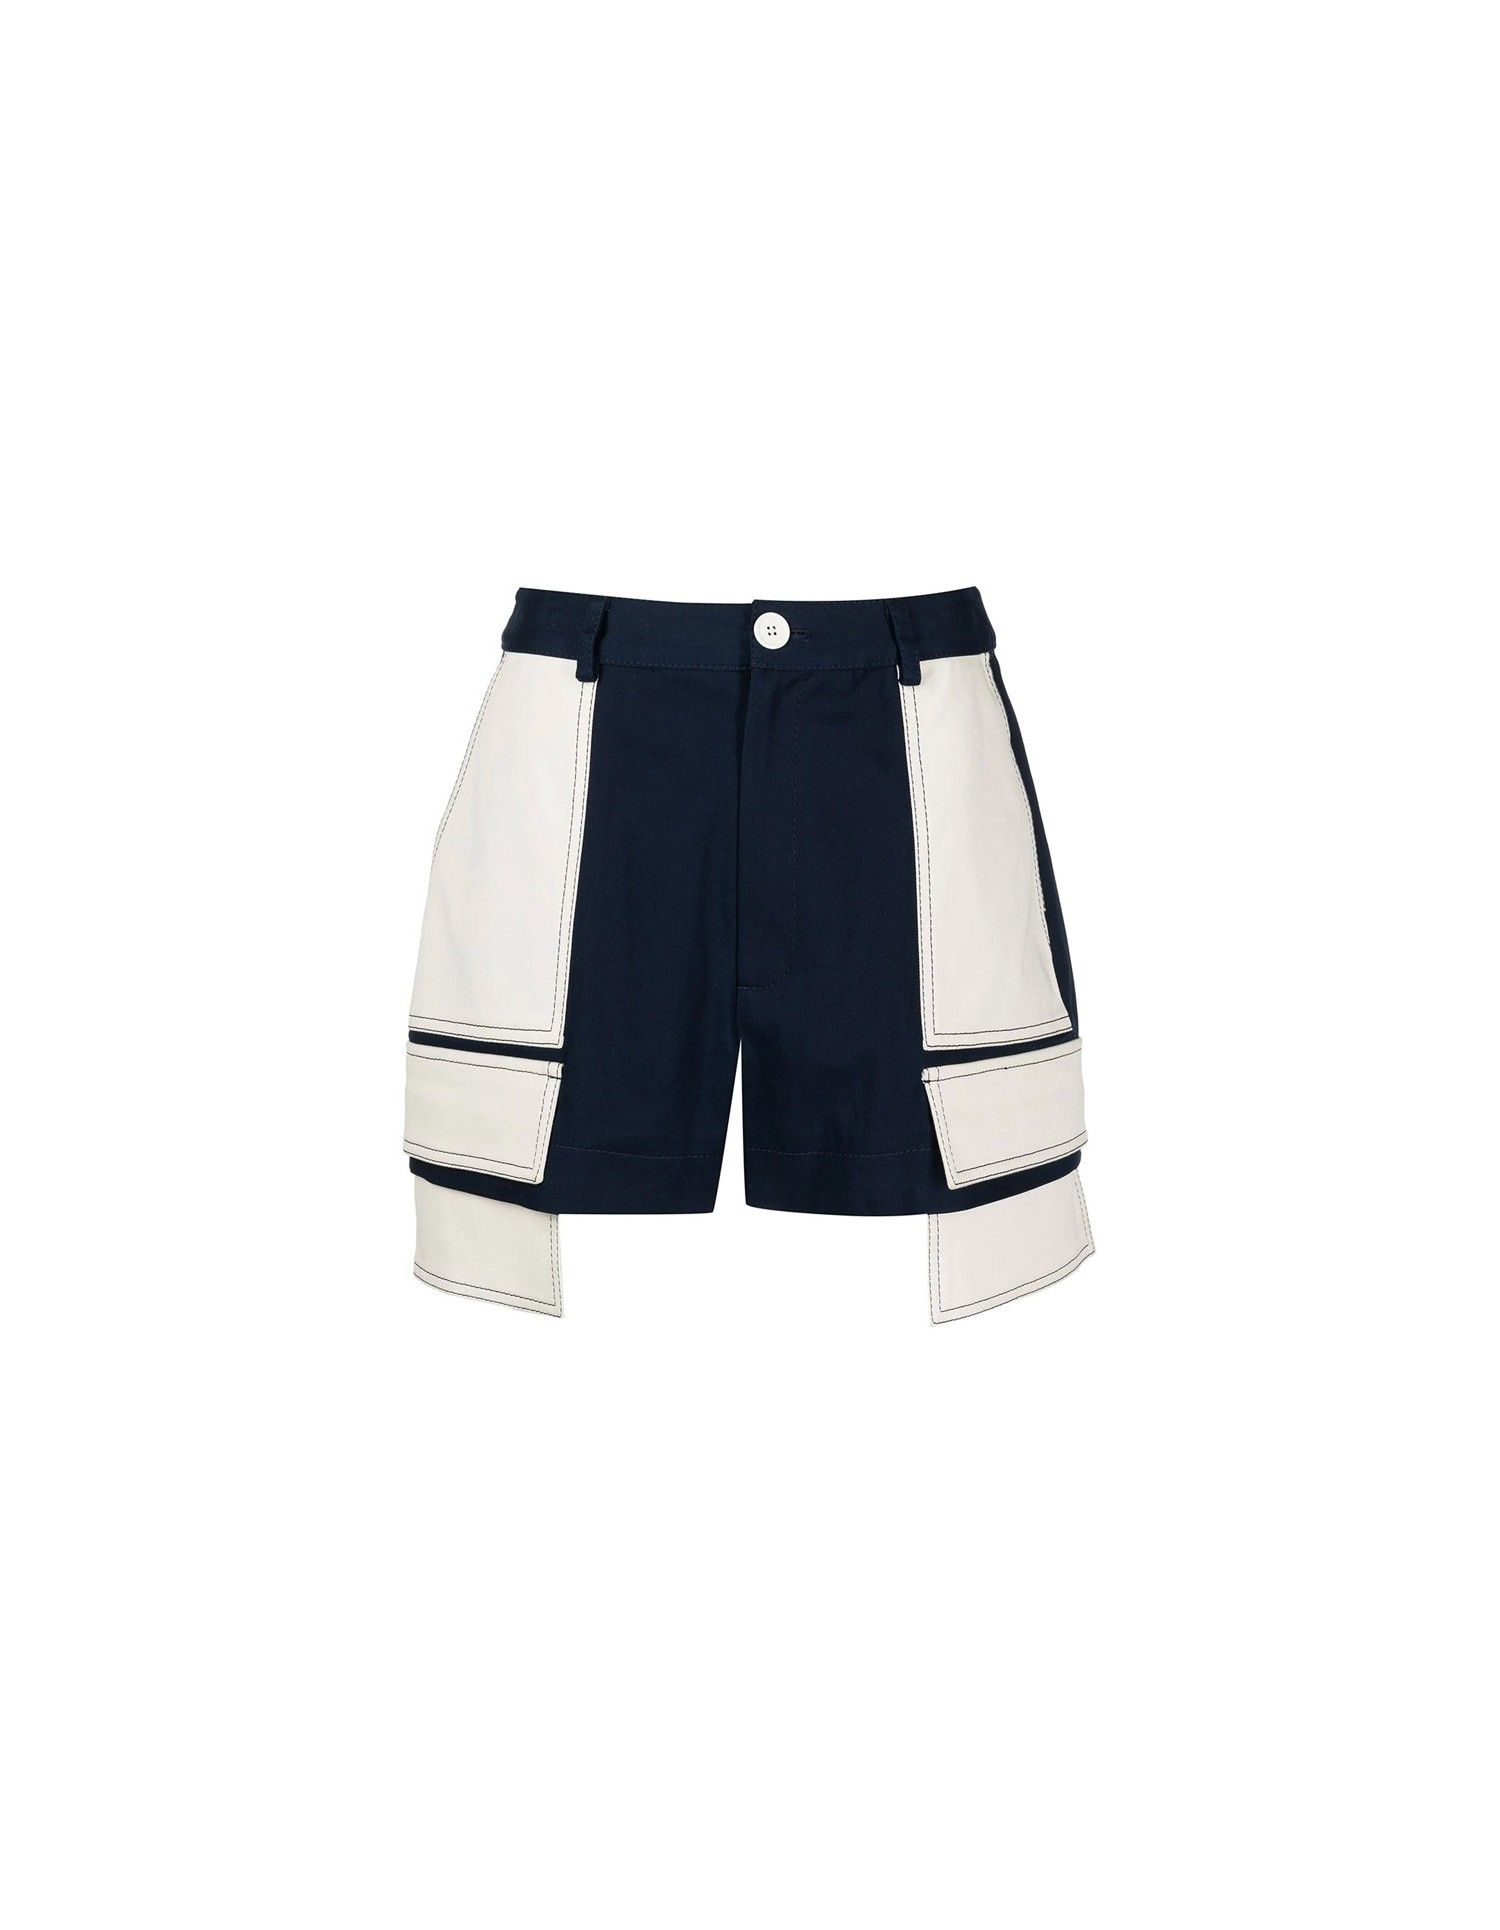 MONSE Extended Patch Pocket Shorts in Midnight and Ivory Flat Front